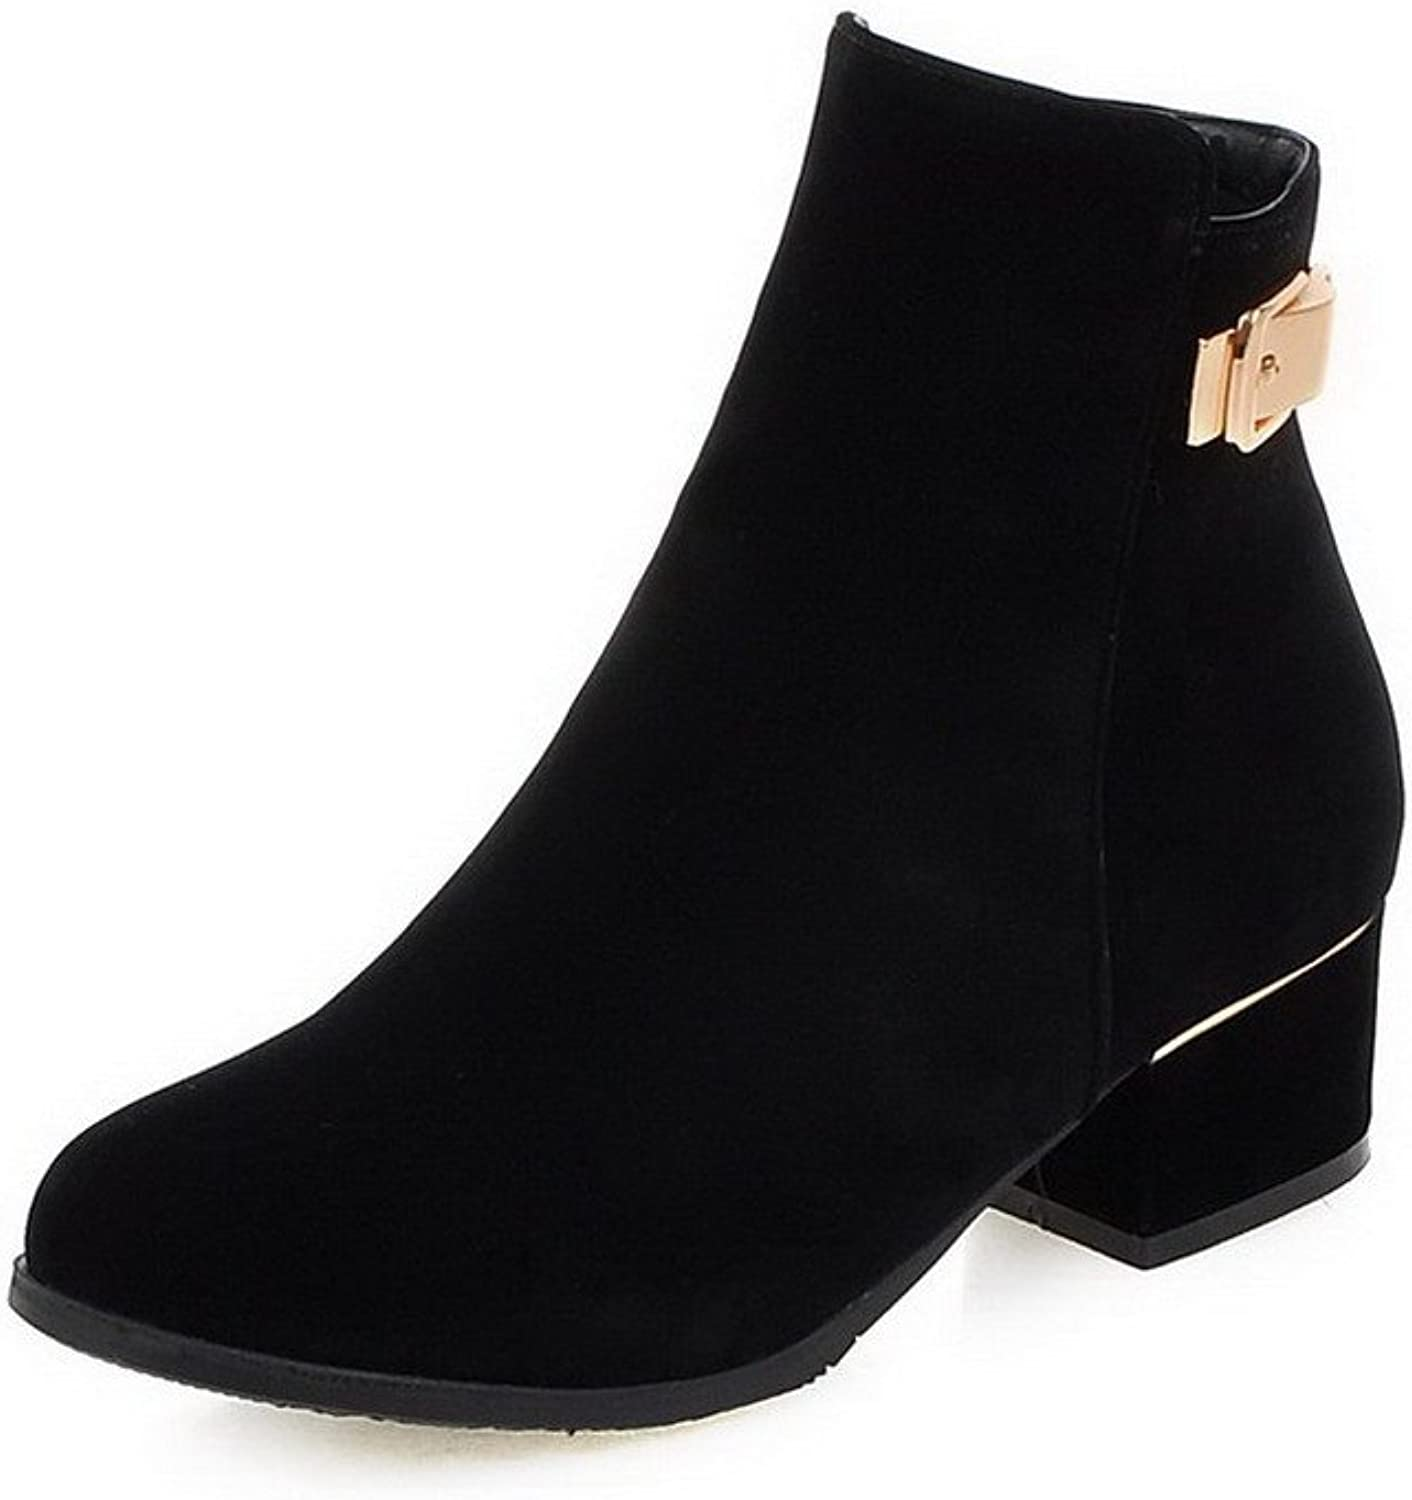 AmoonyFashion Women's Frosted Zipper Round Closed Toe Kitten-Heels Low-top Boots